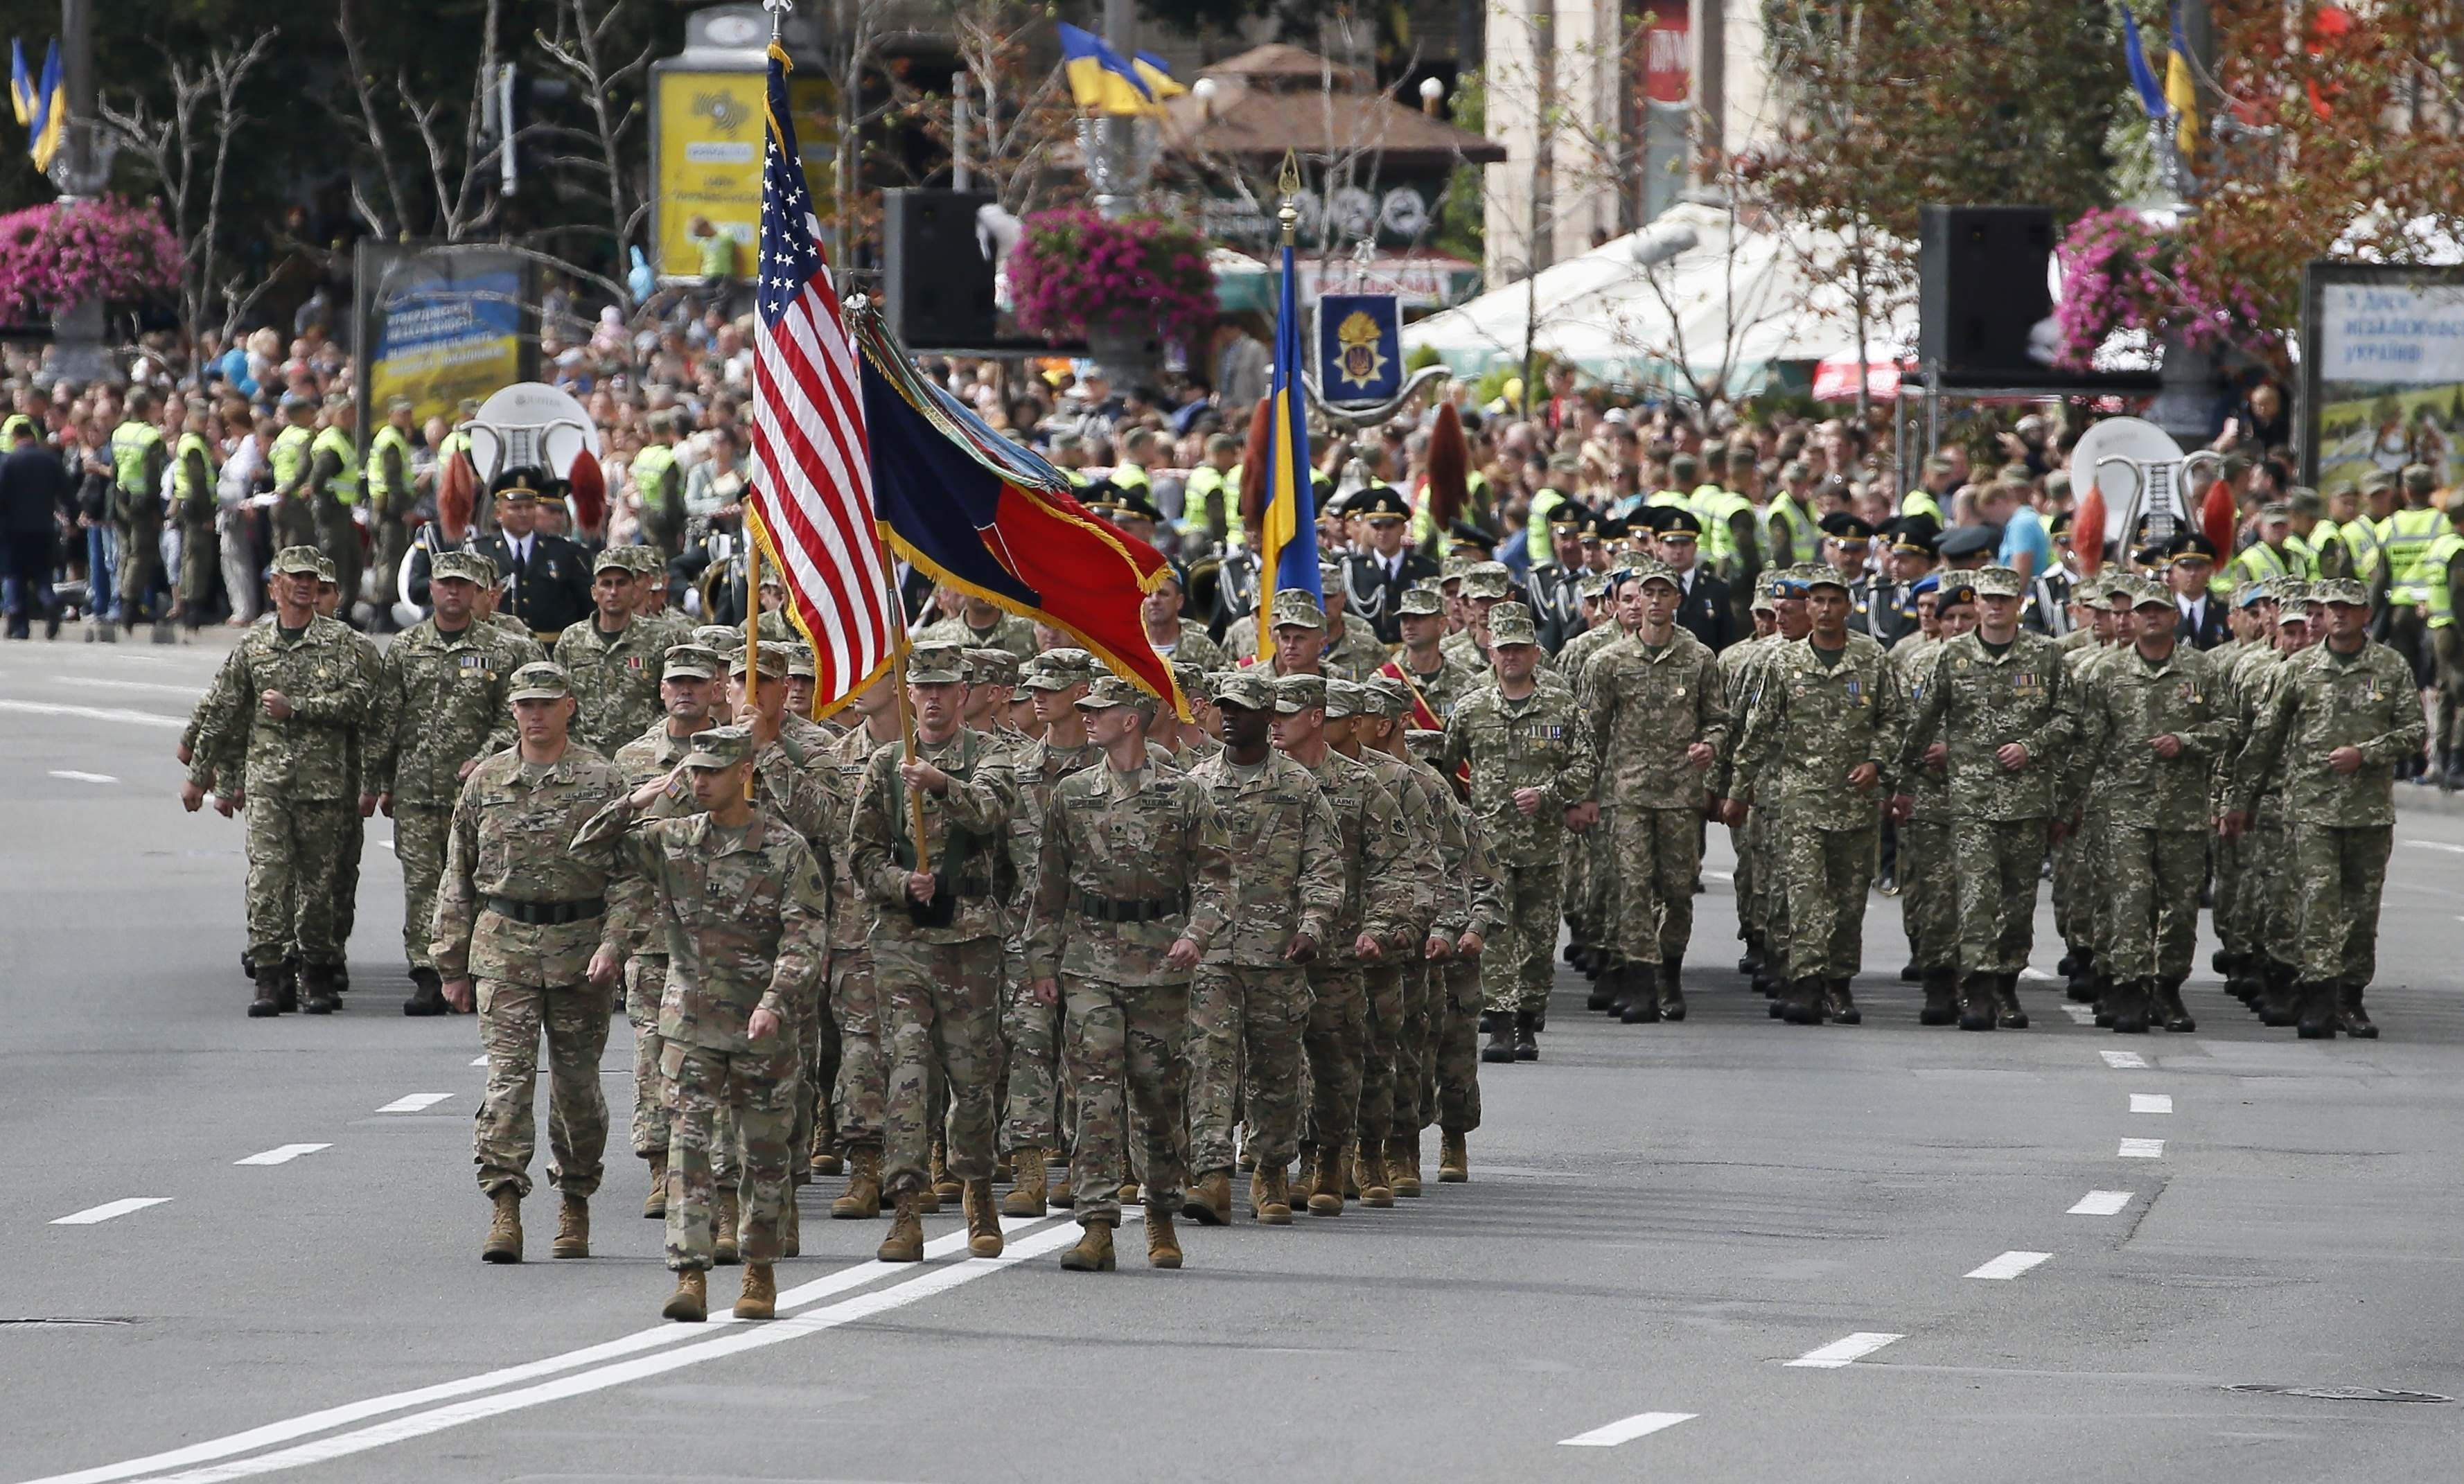 US servicemen (front) march during a military parade marking Ukraine's Independence Day in Kiev, Ukraine August 24, 2017